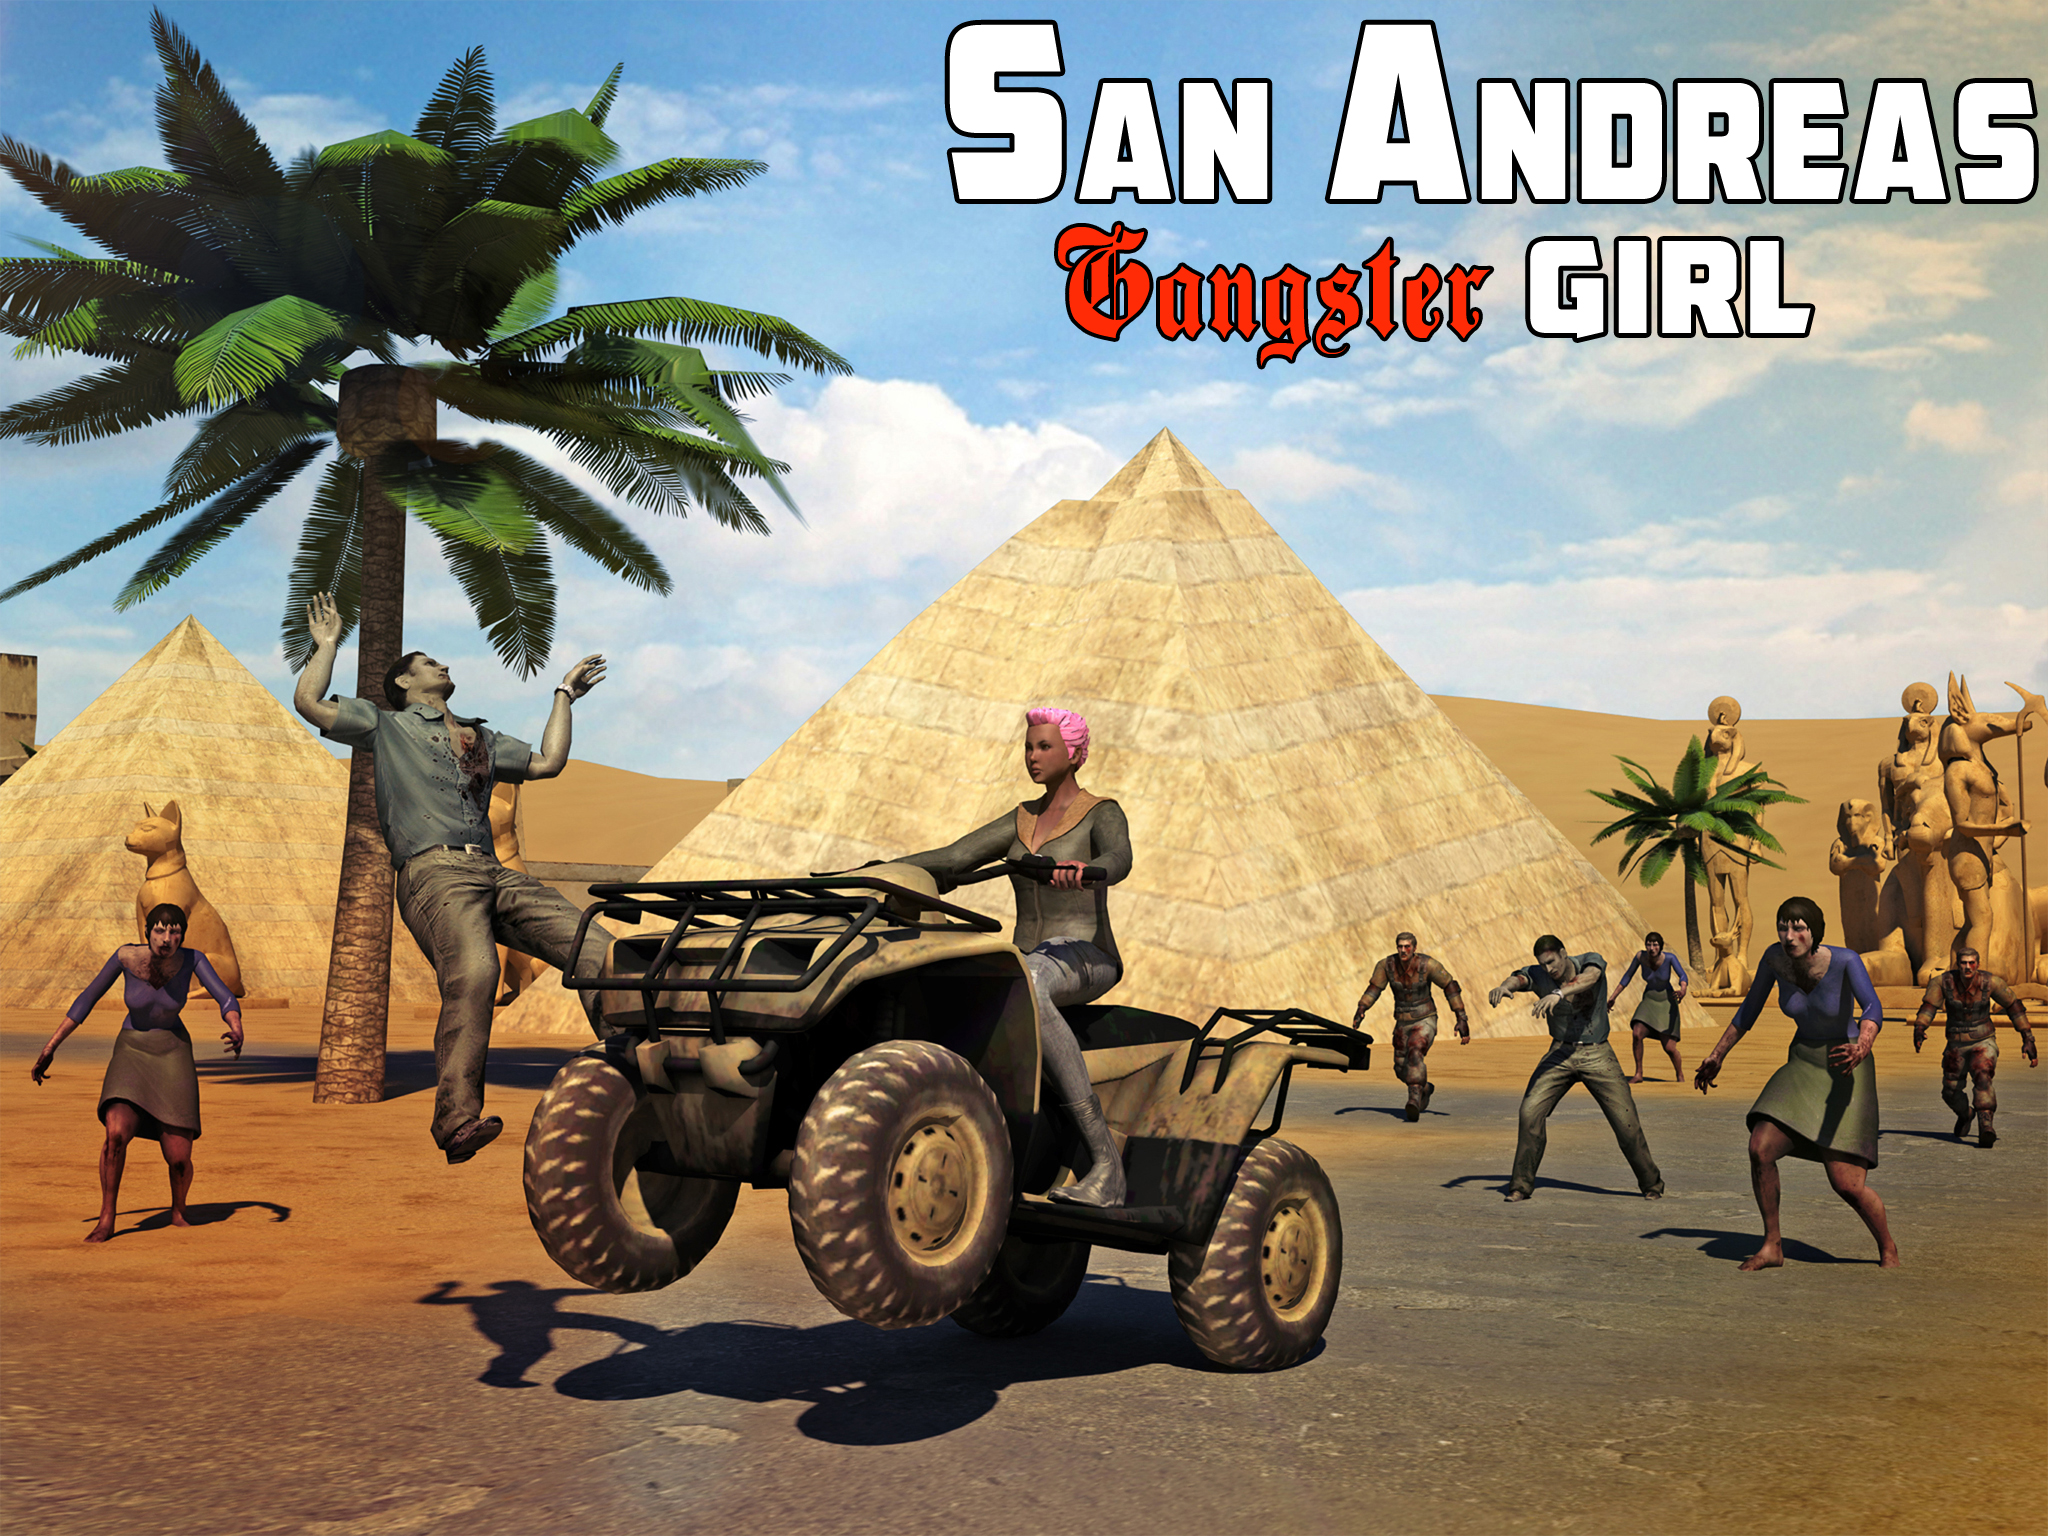 San Andreas Gangster Girl 3D